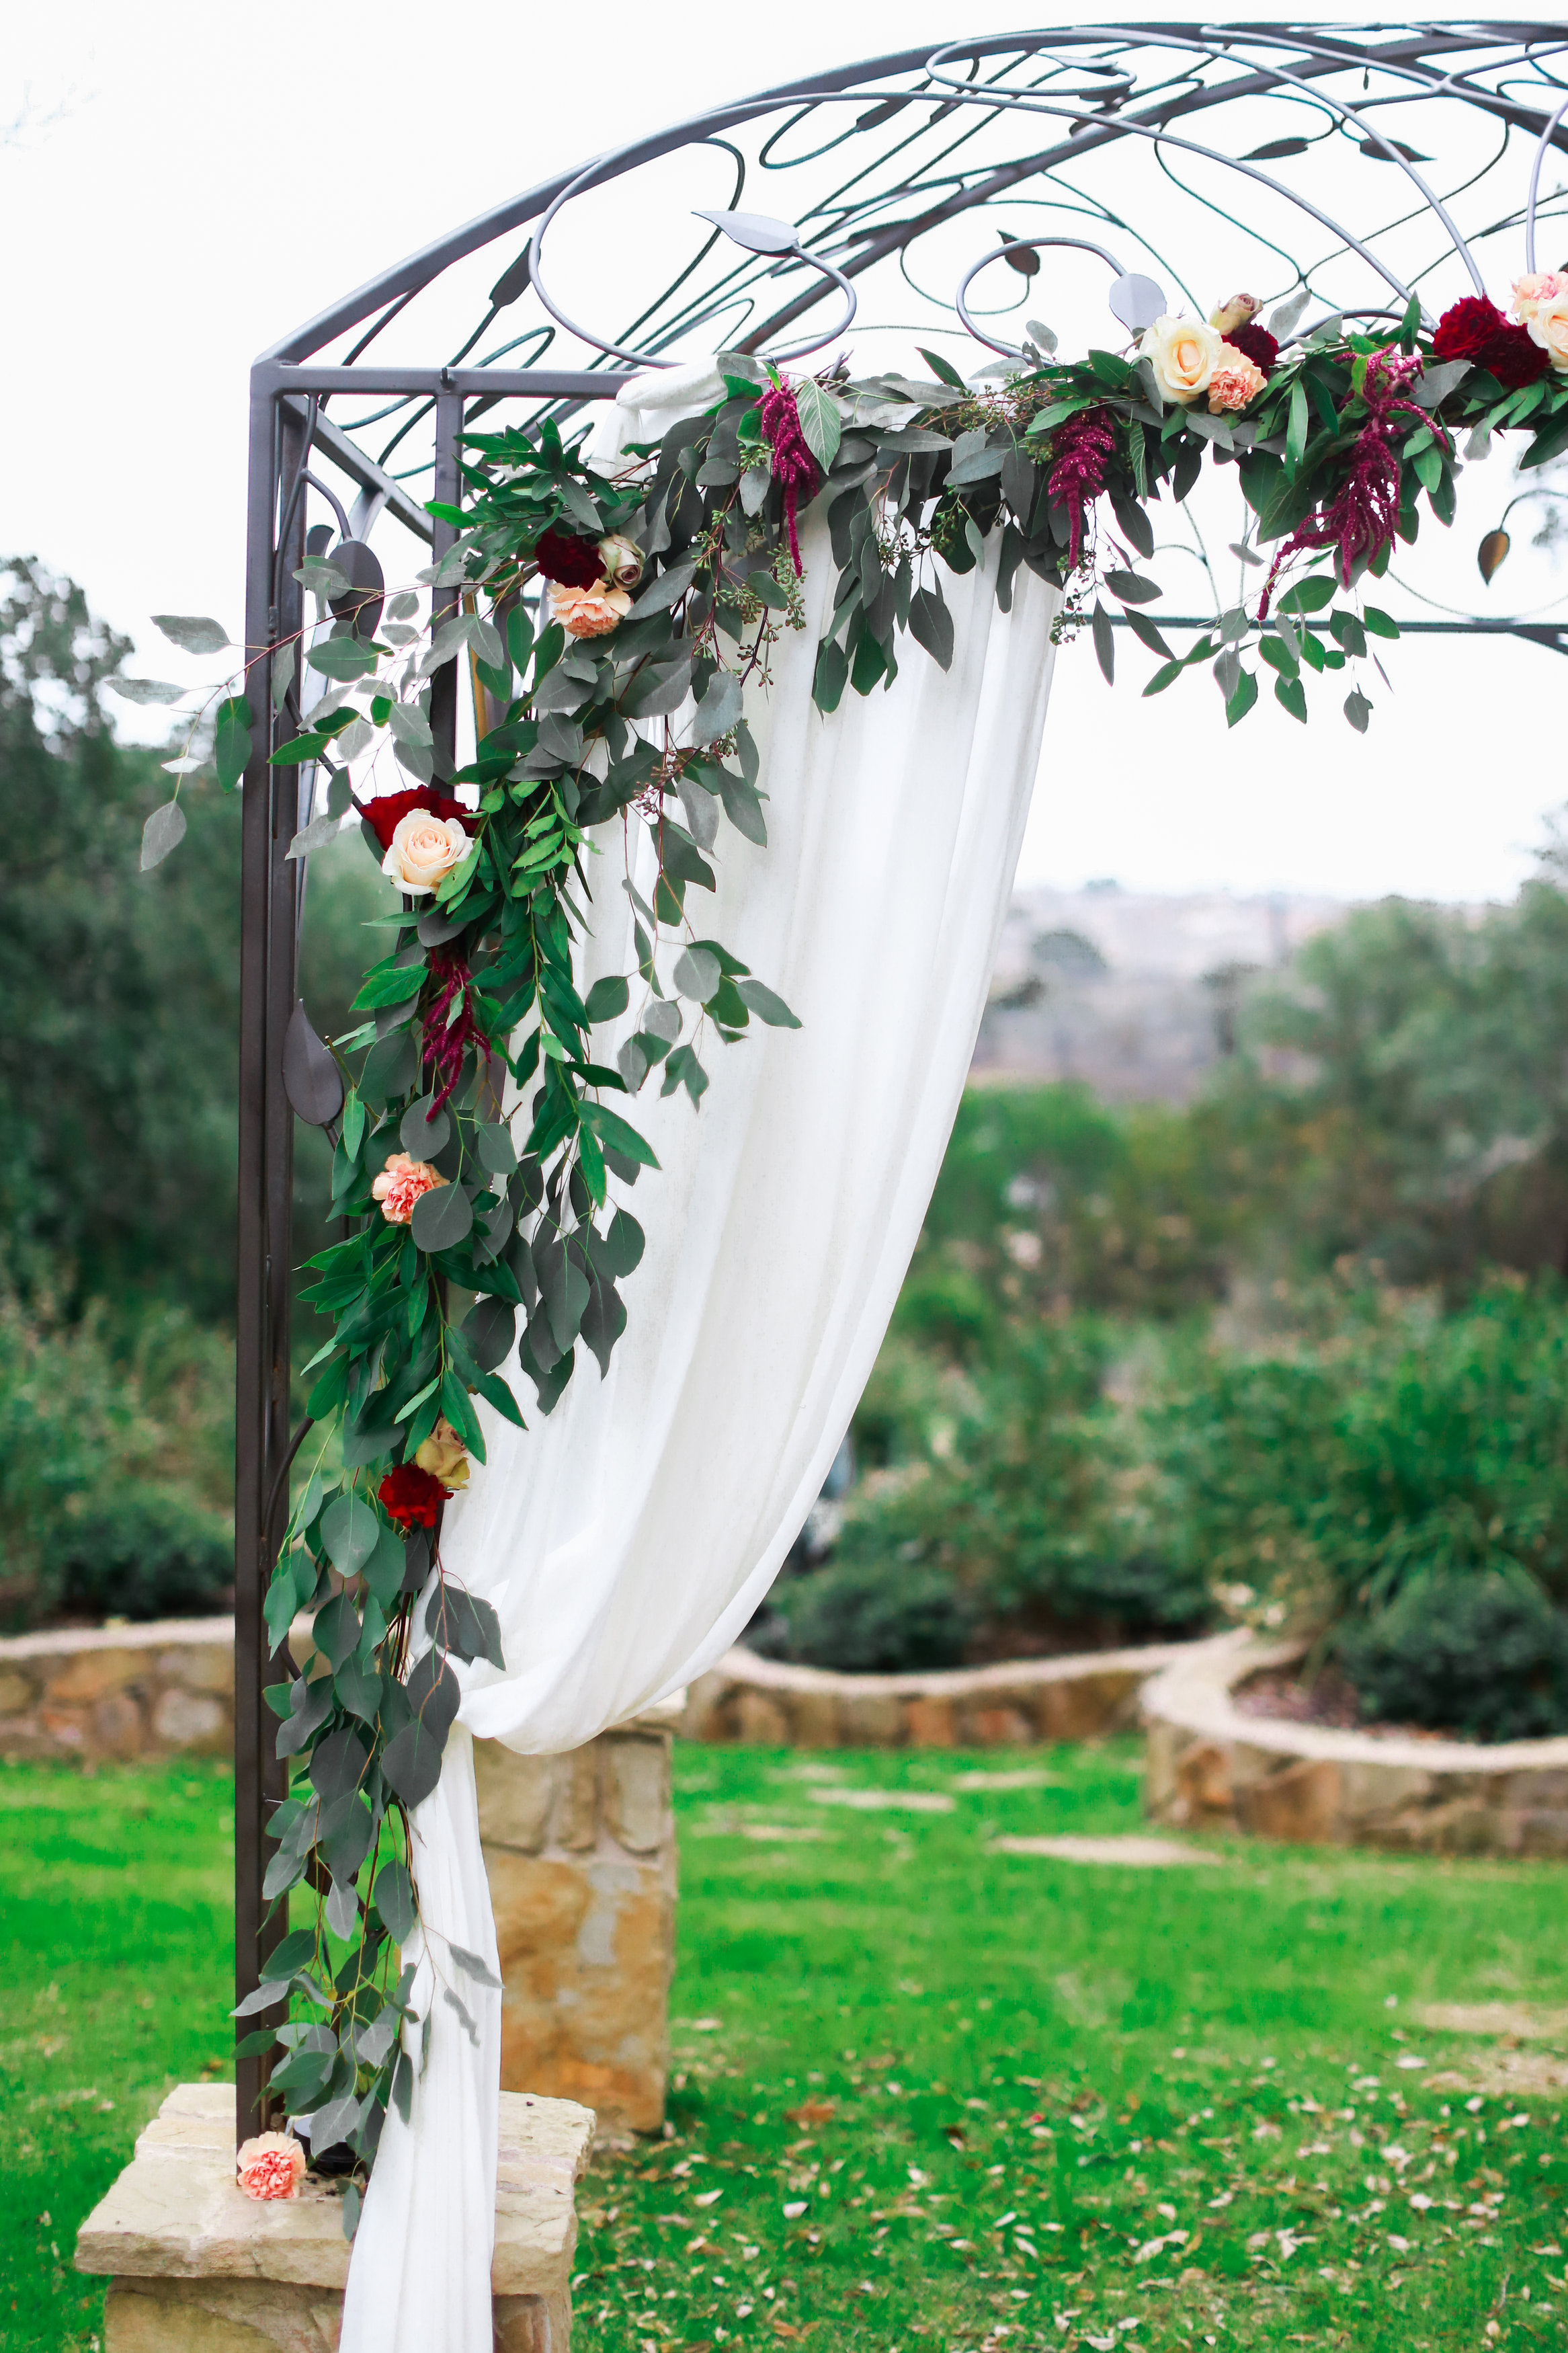 An iron arbor is decorated with white cloth and greenery at a wedding venue in Georgetown, Texas. Photo by Jeff Brummett Visuals.